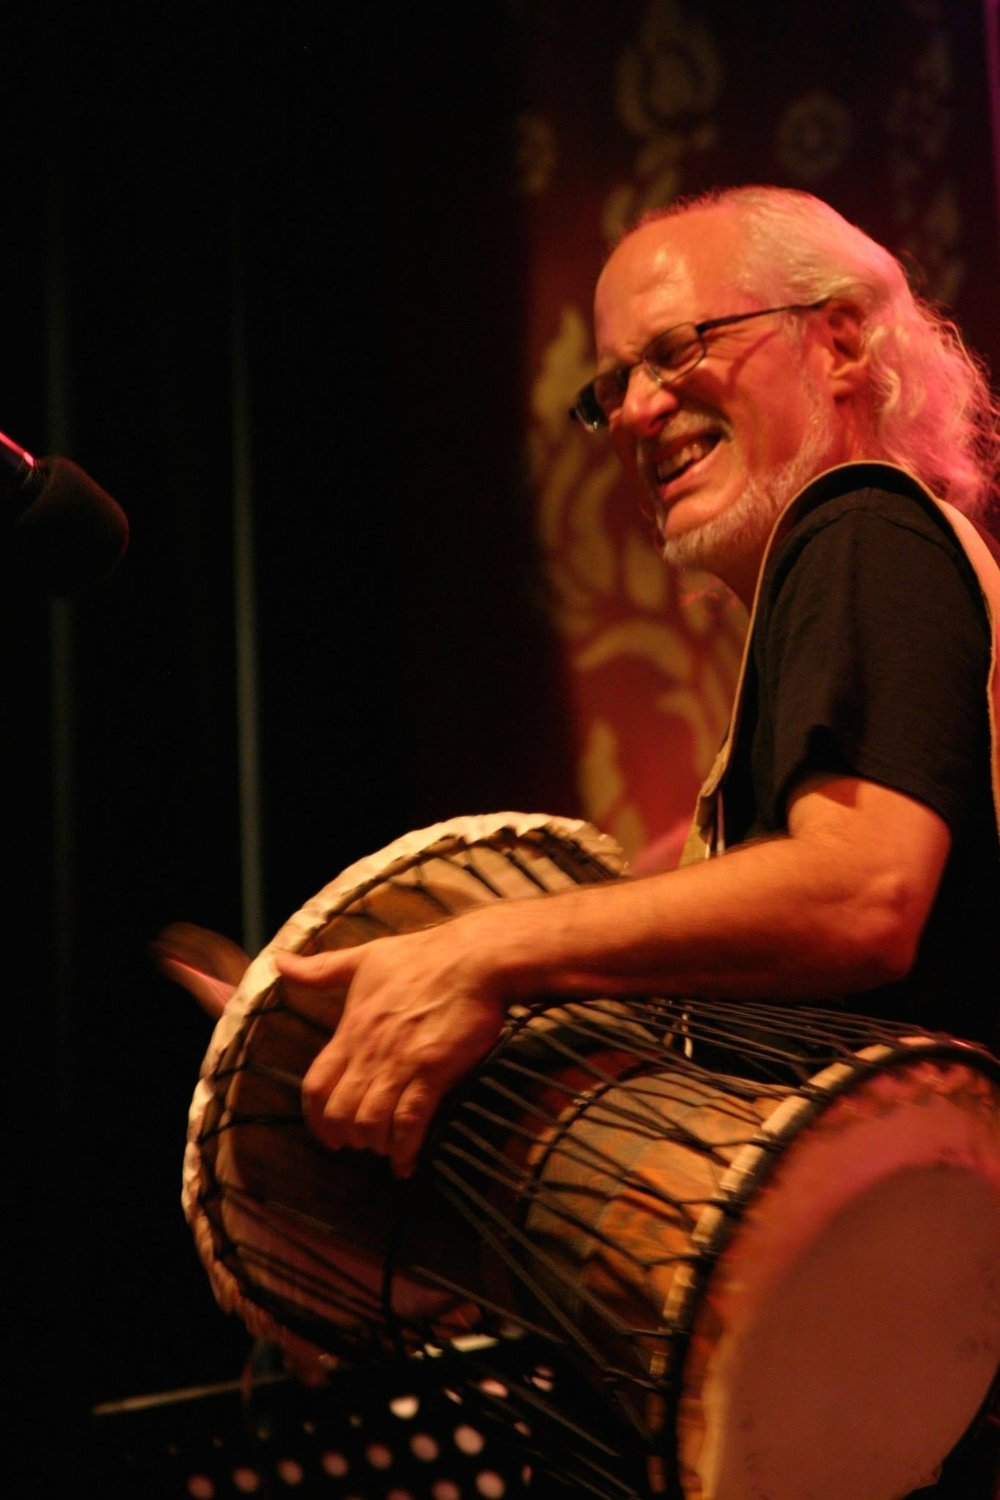 Ian on African Talking Drum at Afro-Weston Concert at the 142 Throckmorton Theatre.